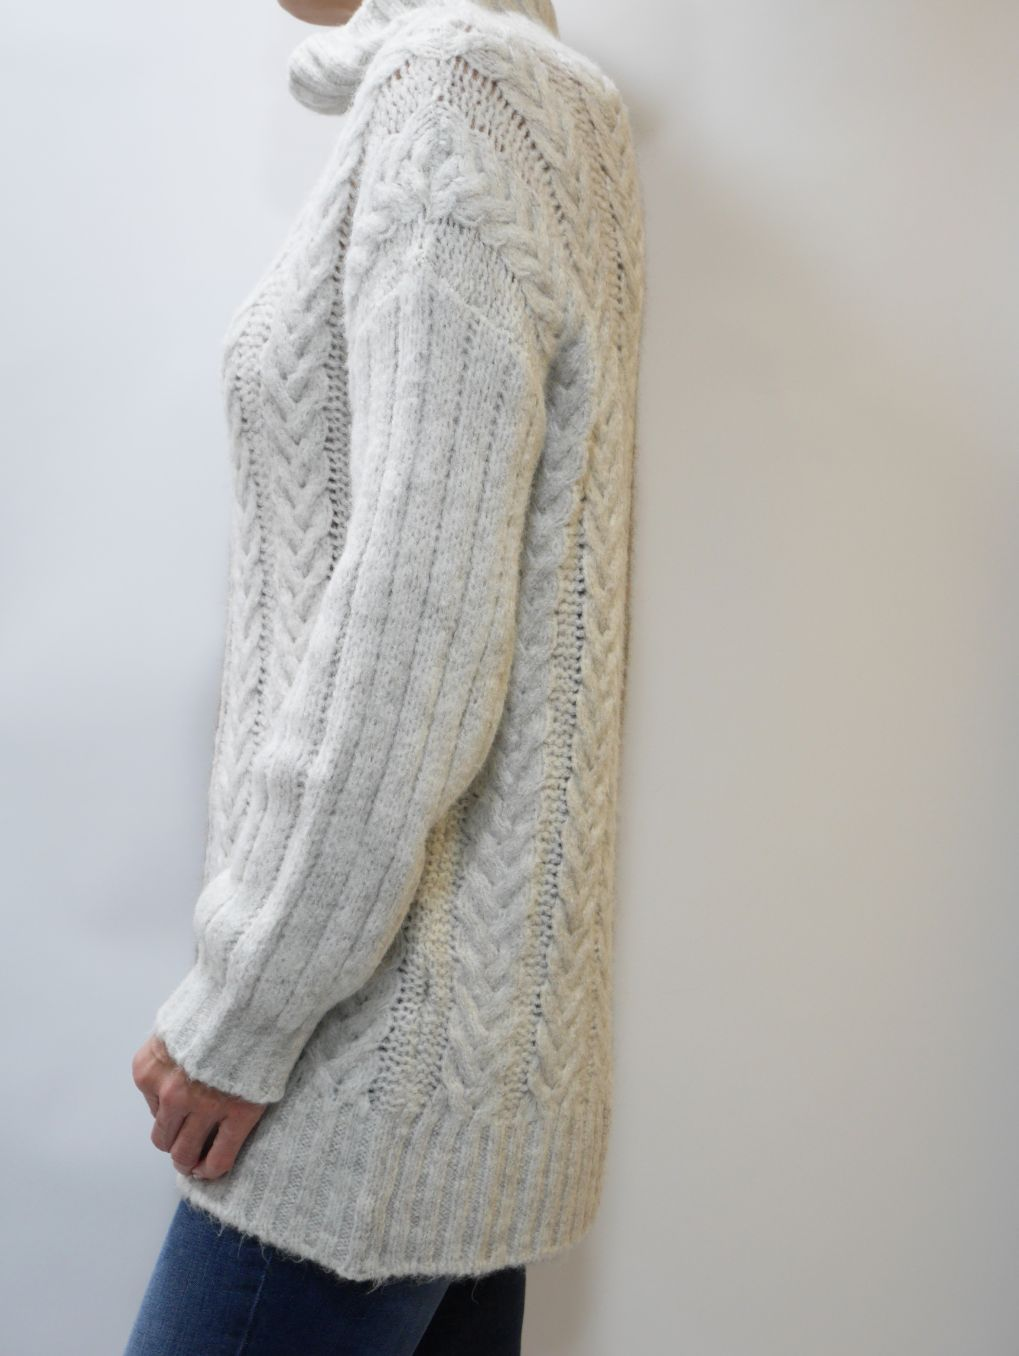 1155L2124 TURTLE NECK SW. LS 901 3